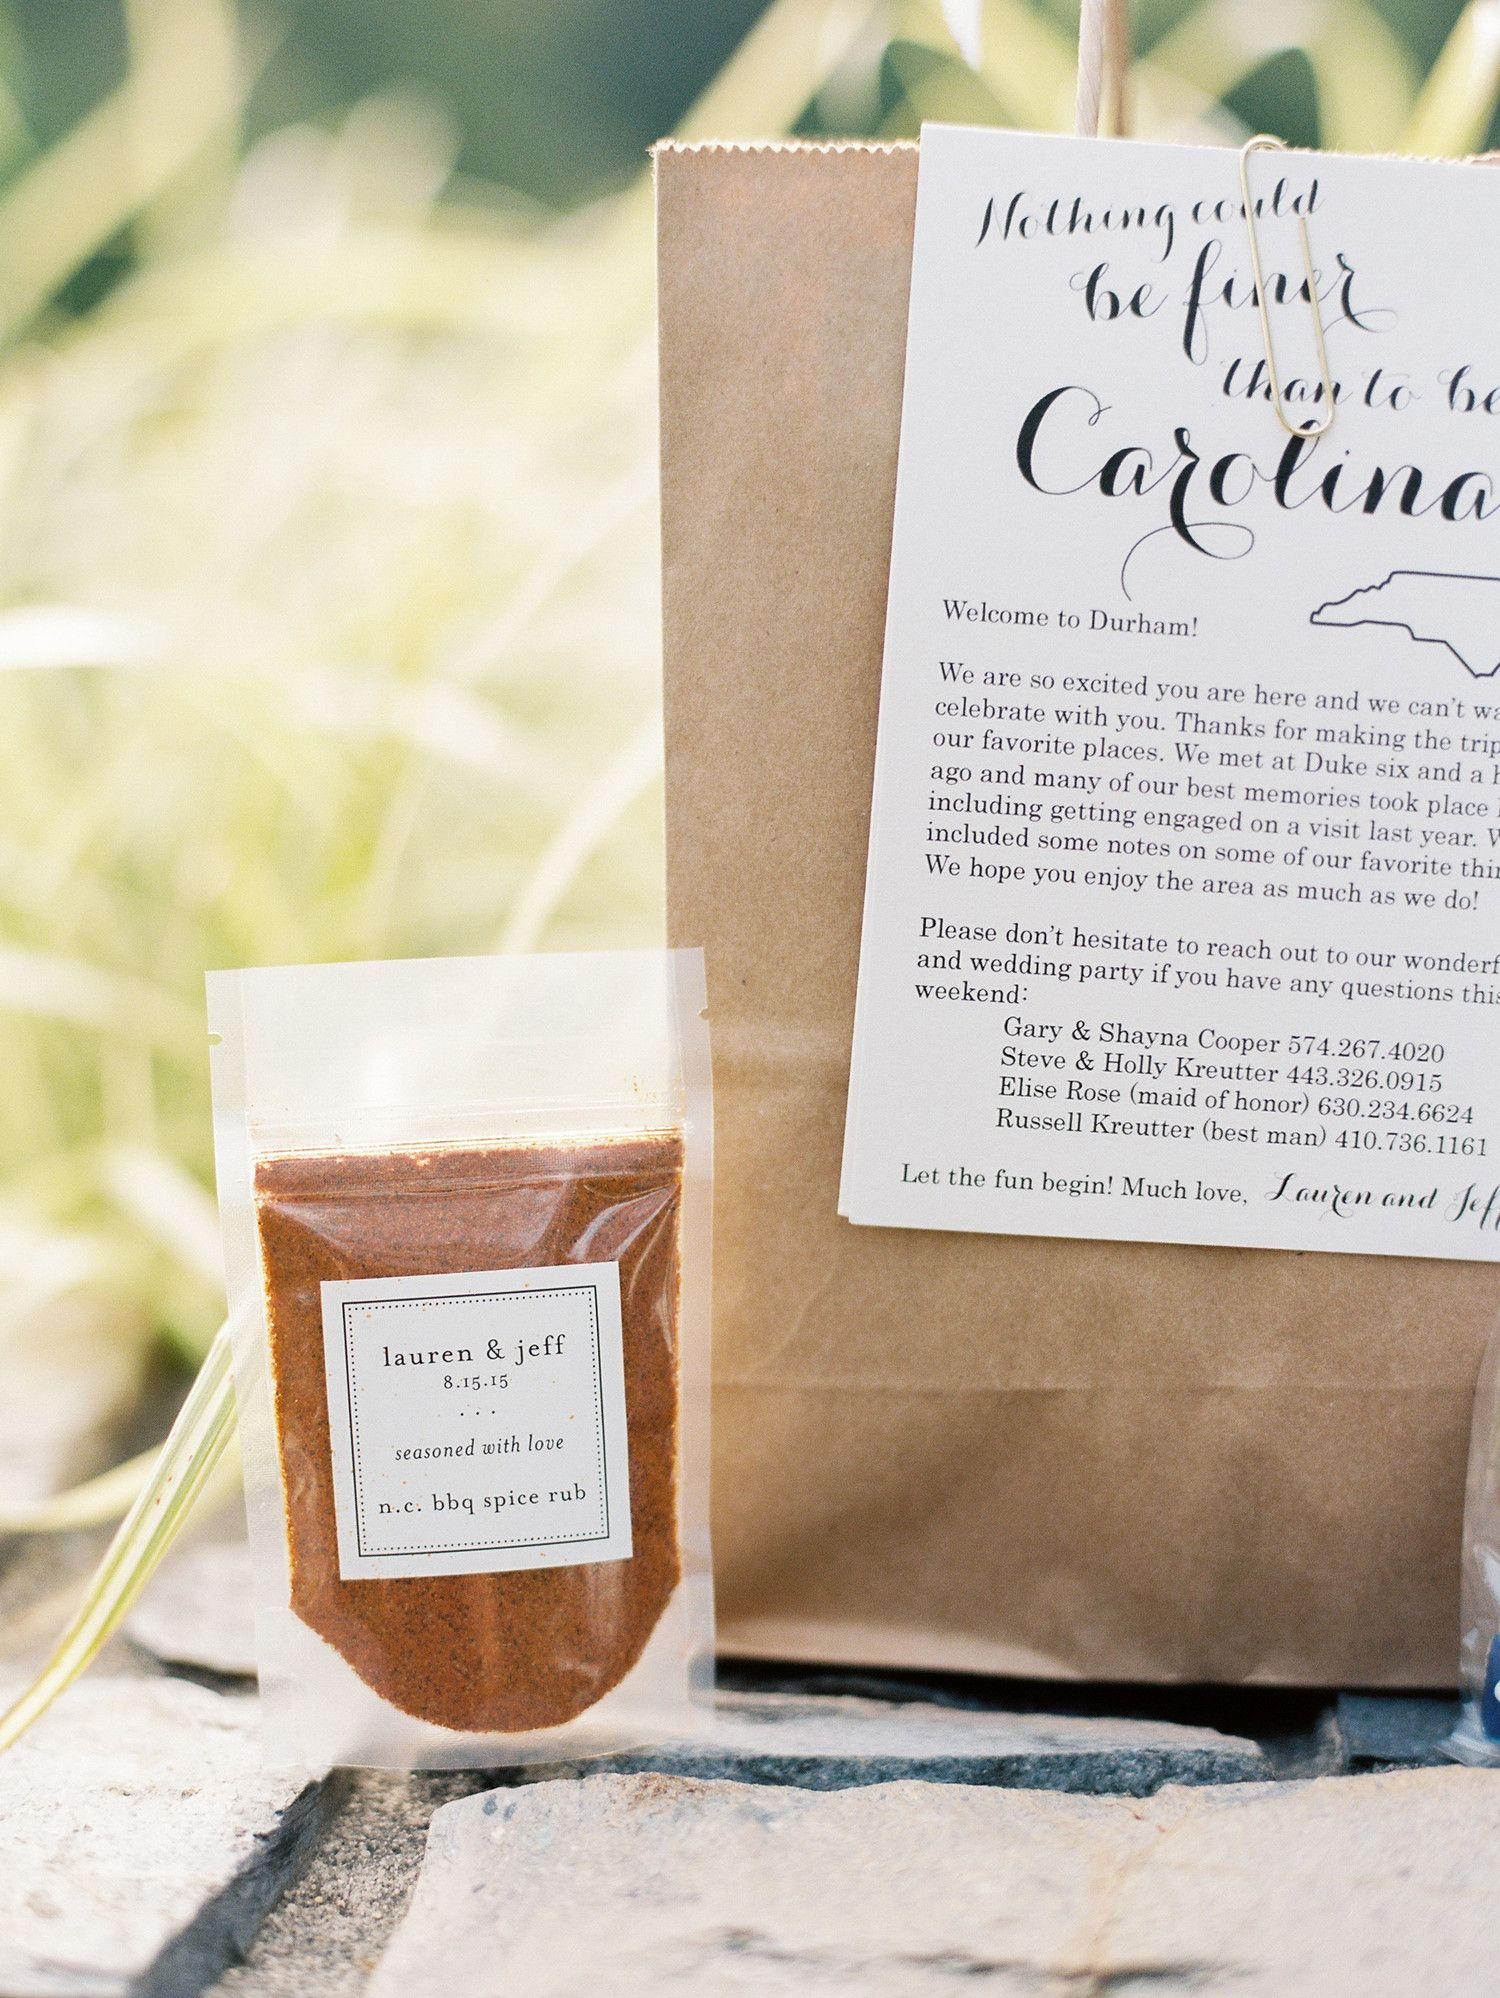 73 Edible Wedding Favors Guests Will Eat Up (Literally!) | Favors ...